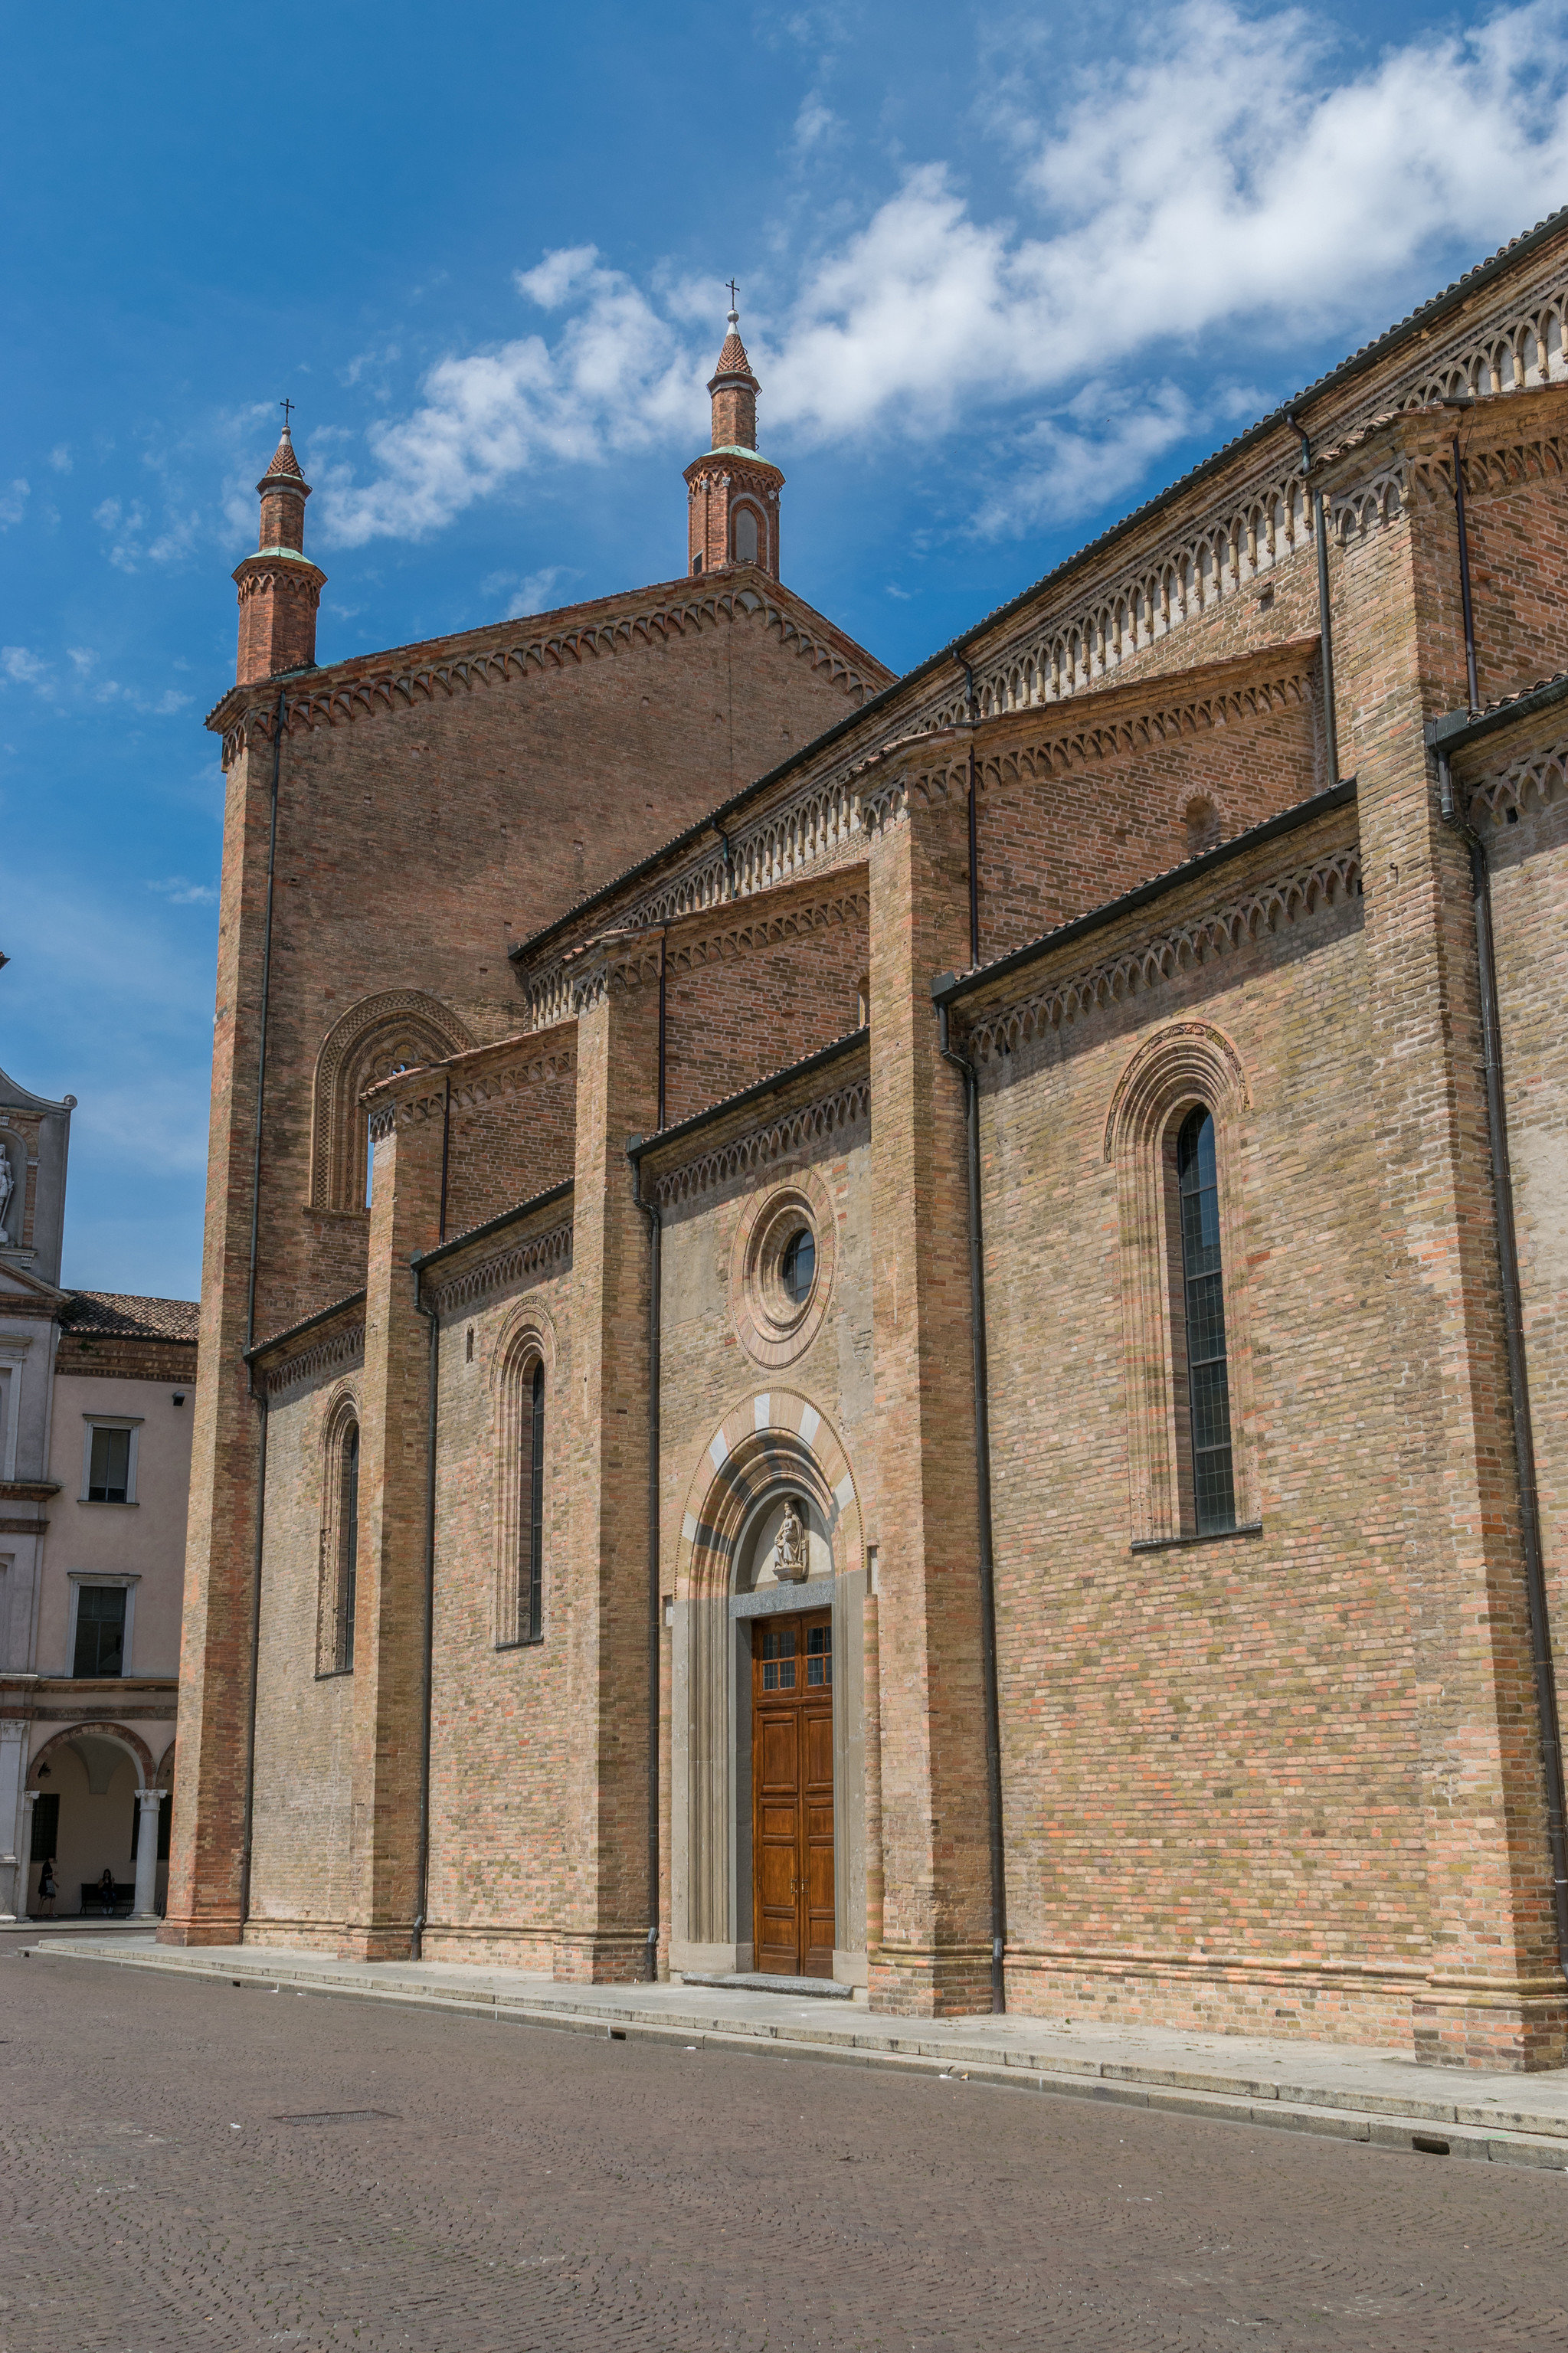 Arts + Culture Italy Milan Trip Ideas building sky outdoor brick historic site medieval architecture wall Church place of worship history basilica facade window arch stone old bell tower almshouse column chapel cathedral parish tall roof